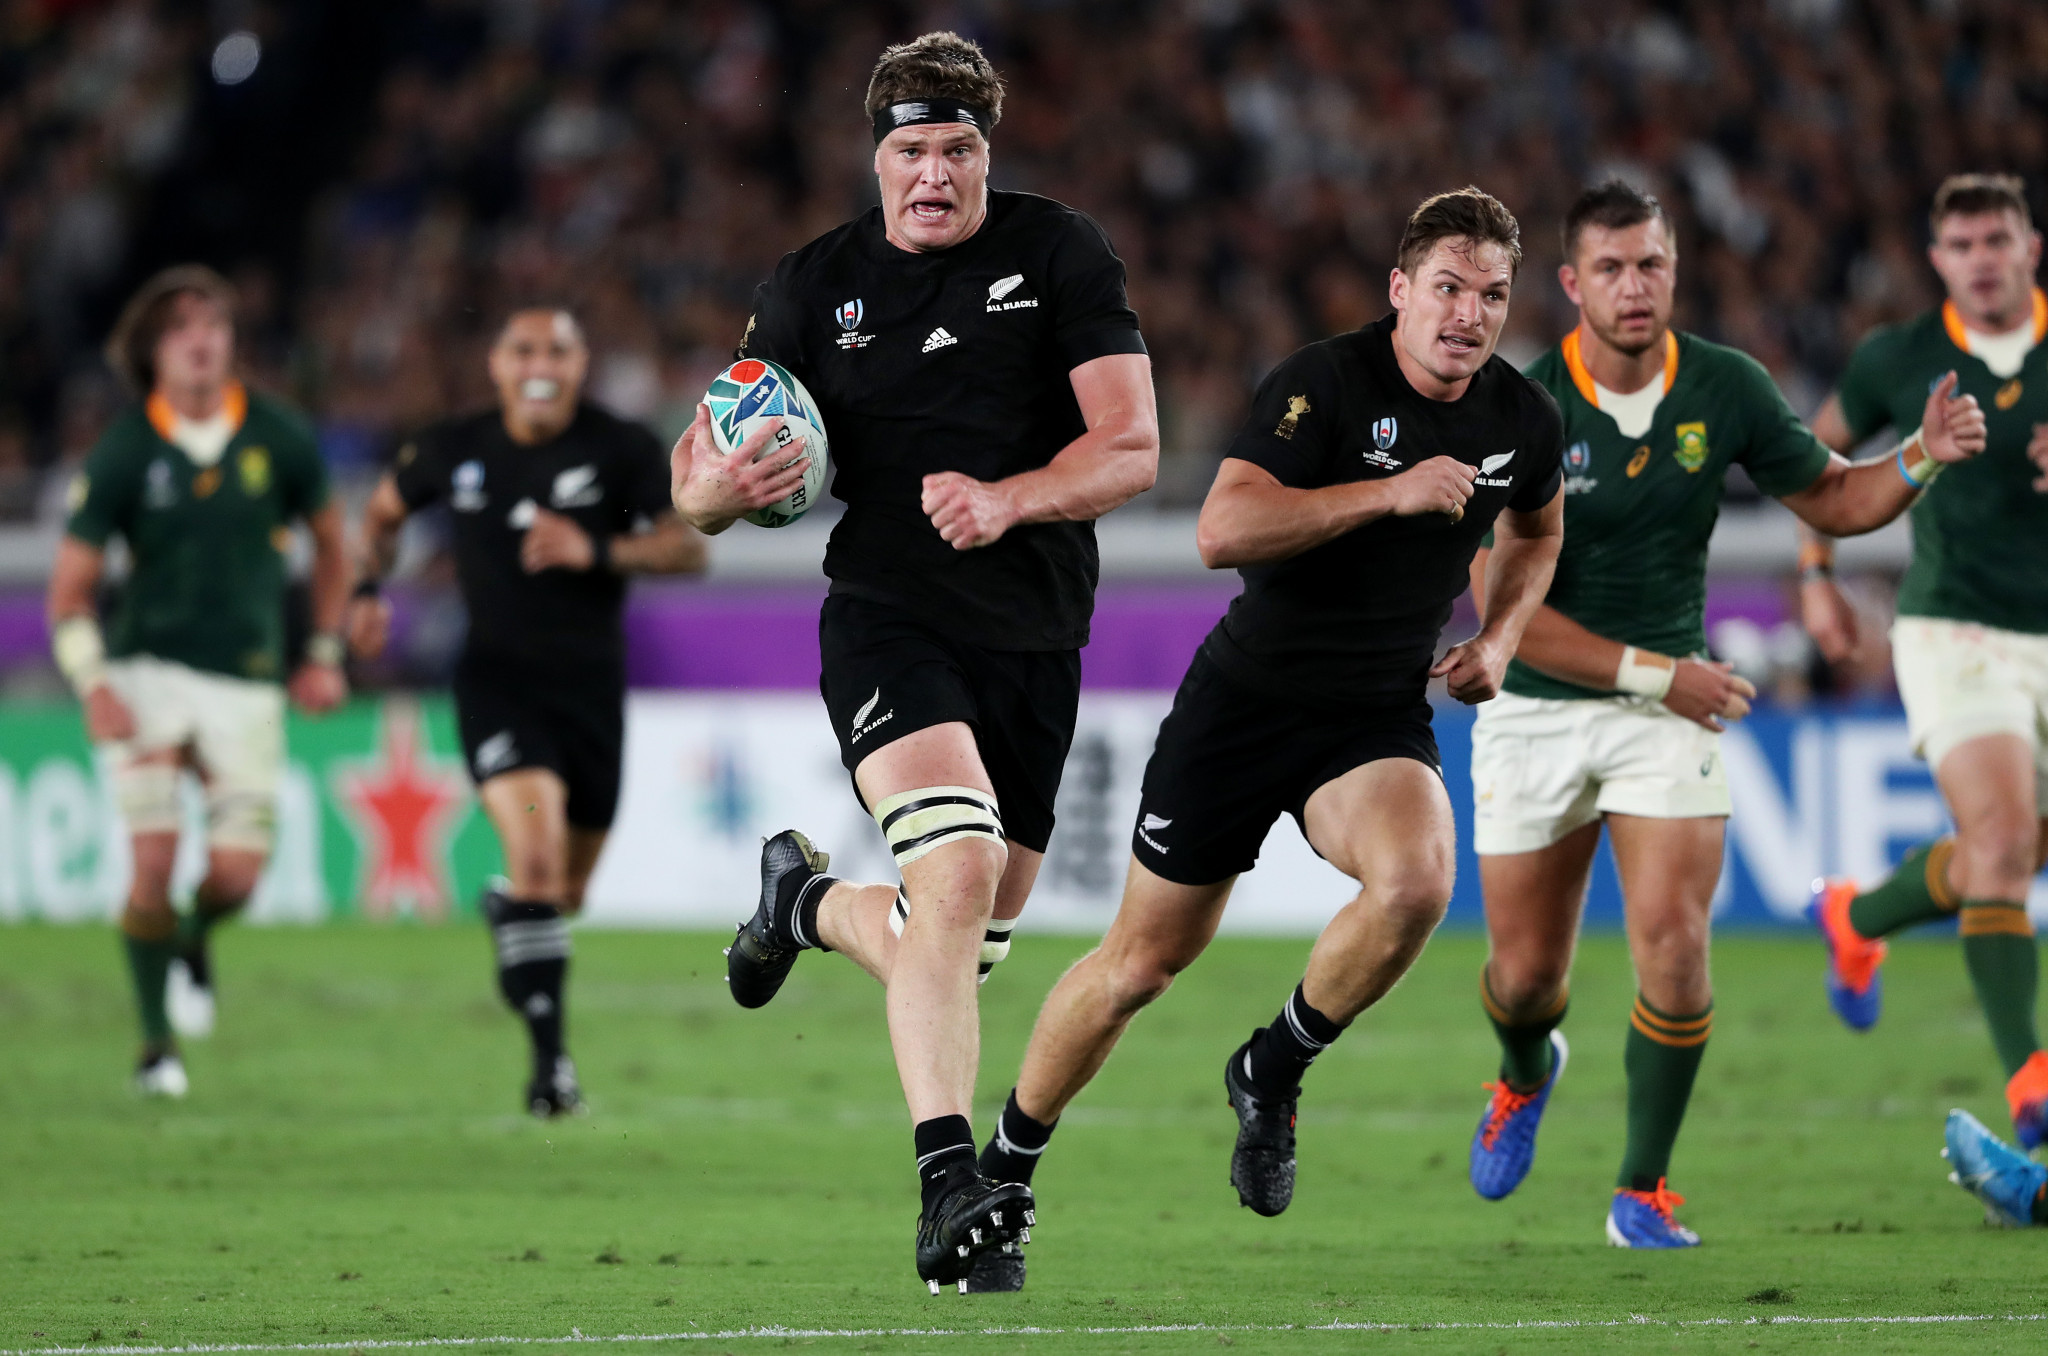 New Zealand edge South Africa in Rugby World Cup on day of thrills